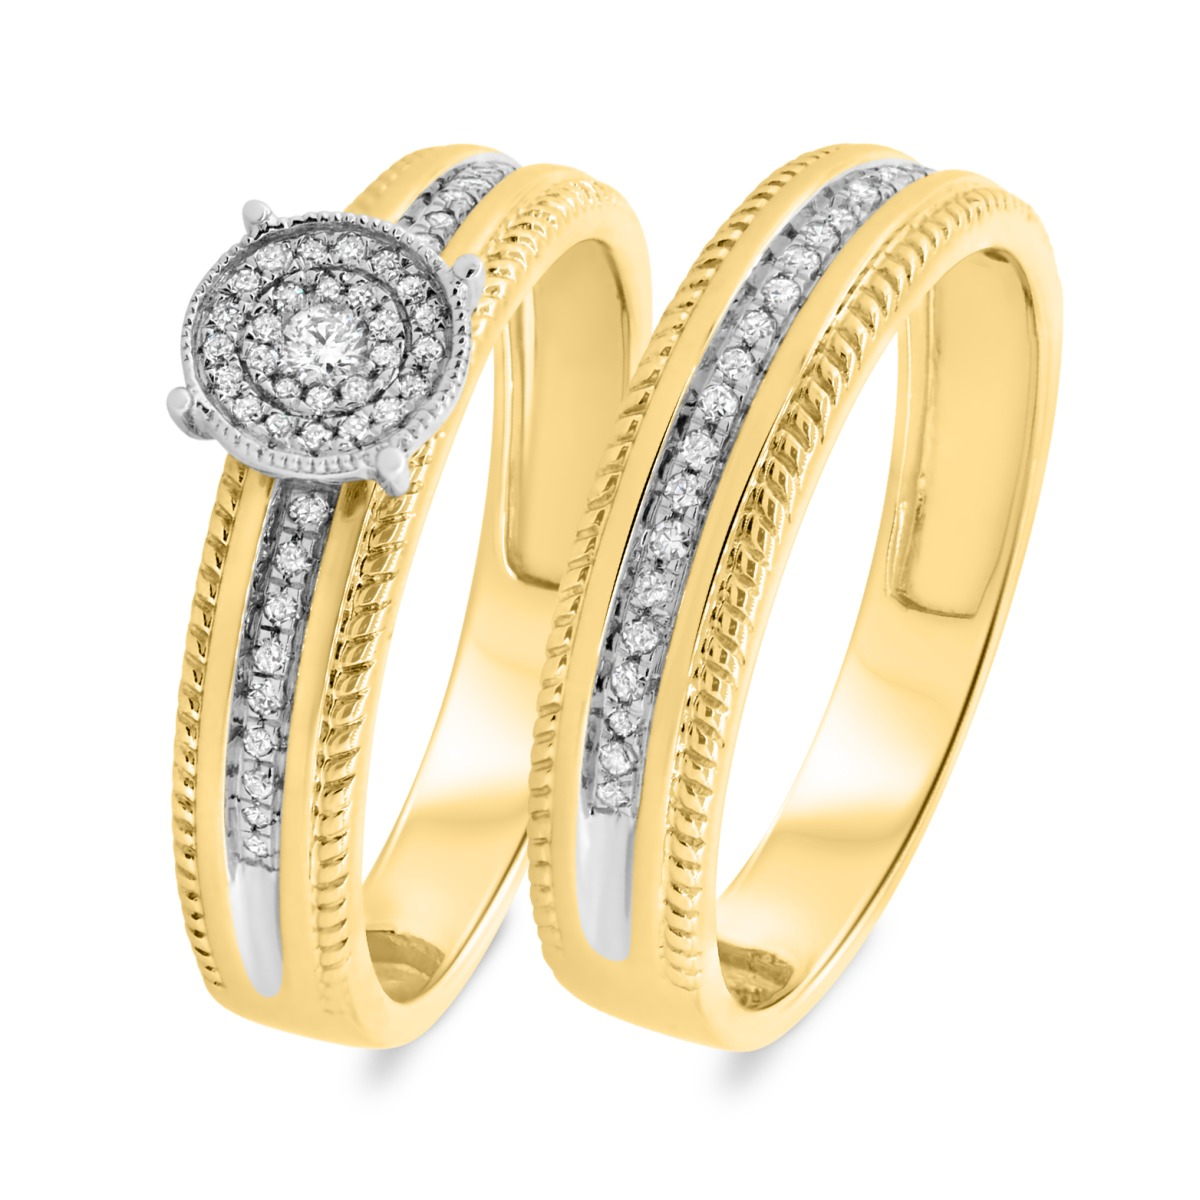 1/5 CT. T.W. Diamond Matching Bridal Ring Set 10K Yellow Gold